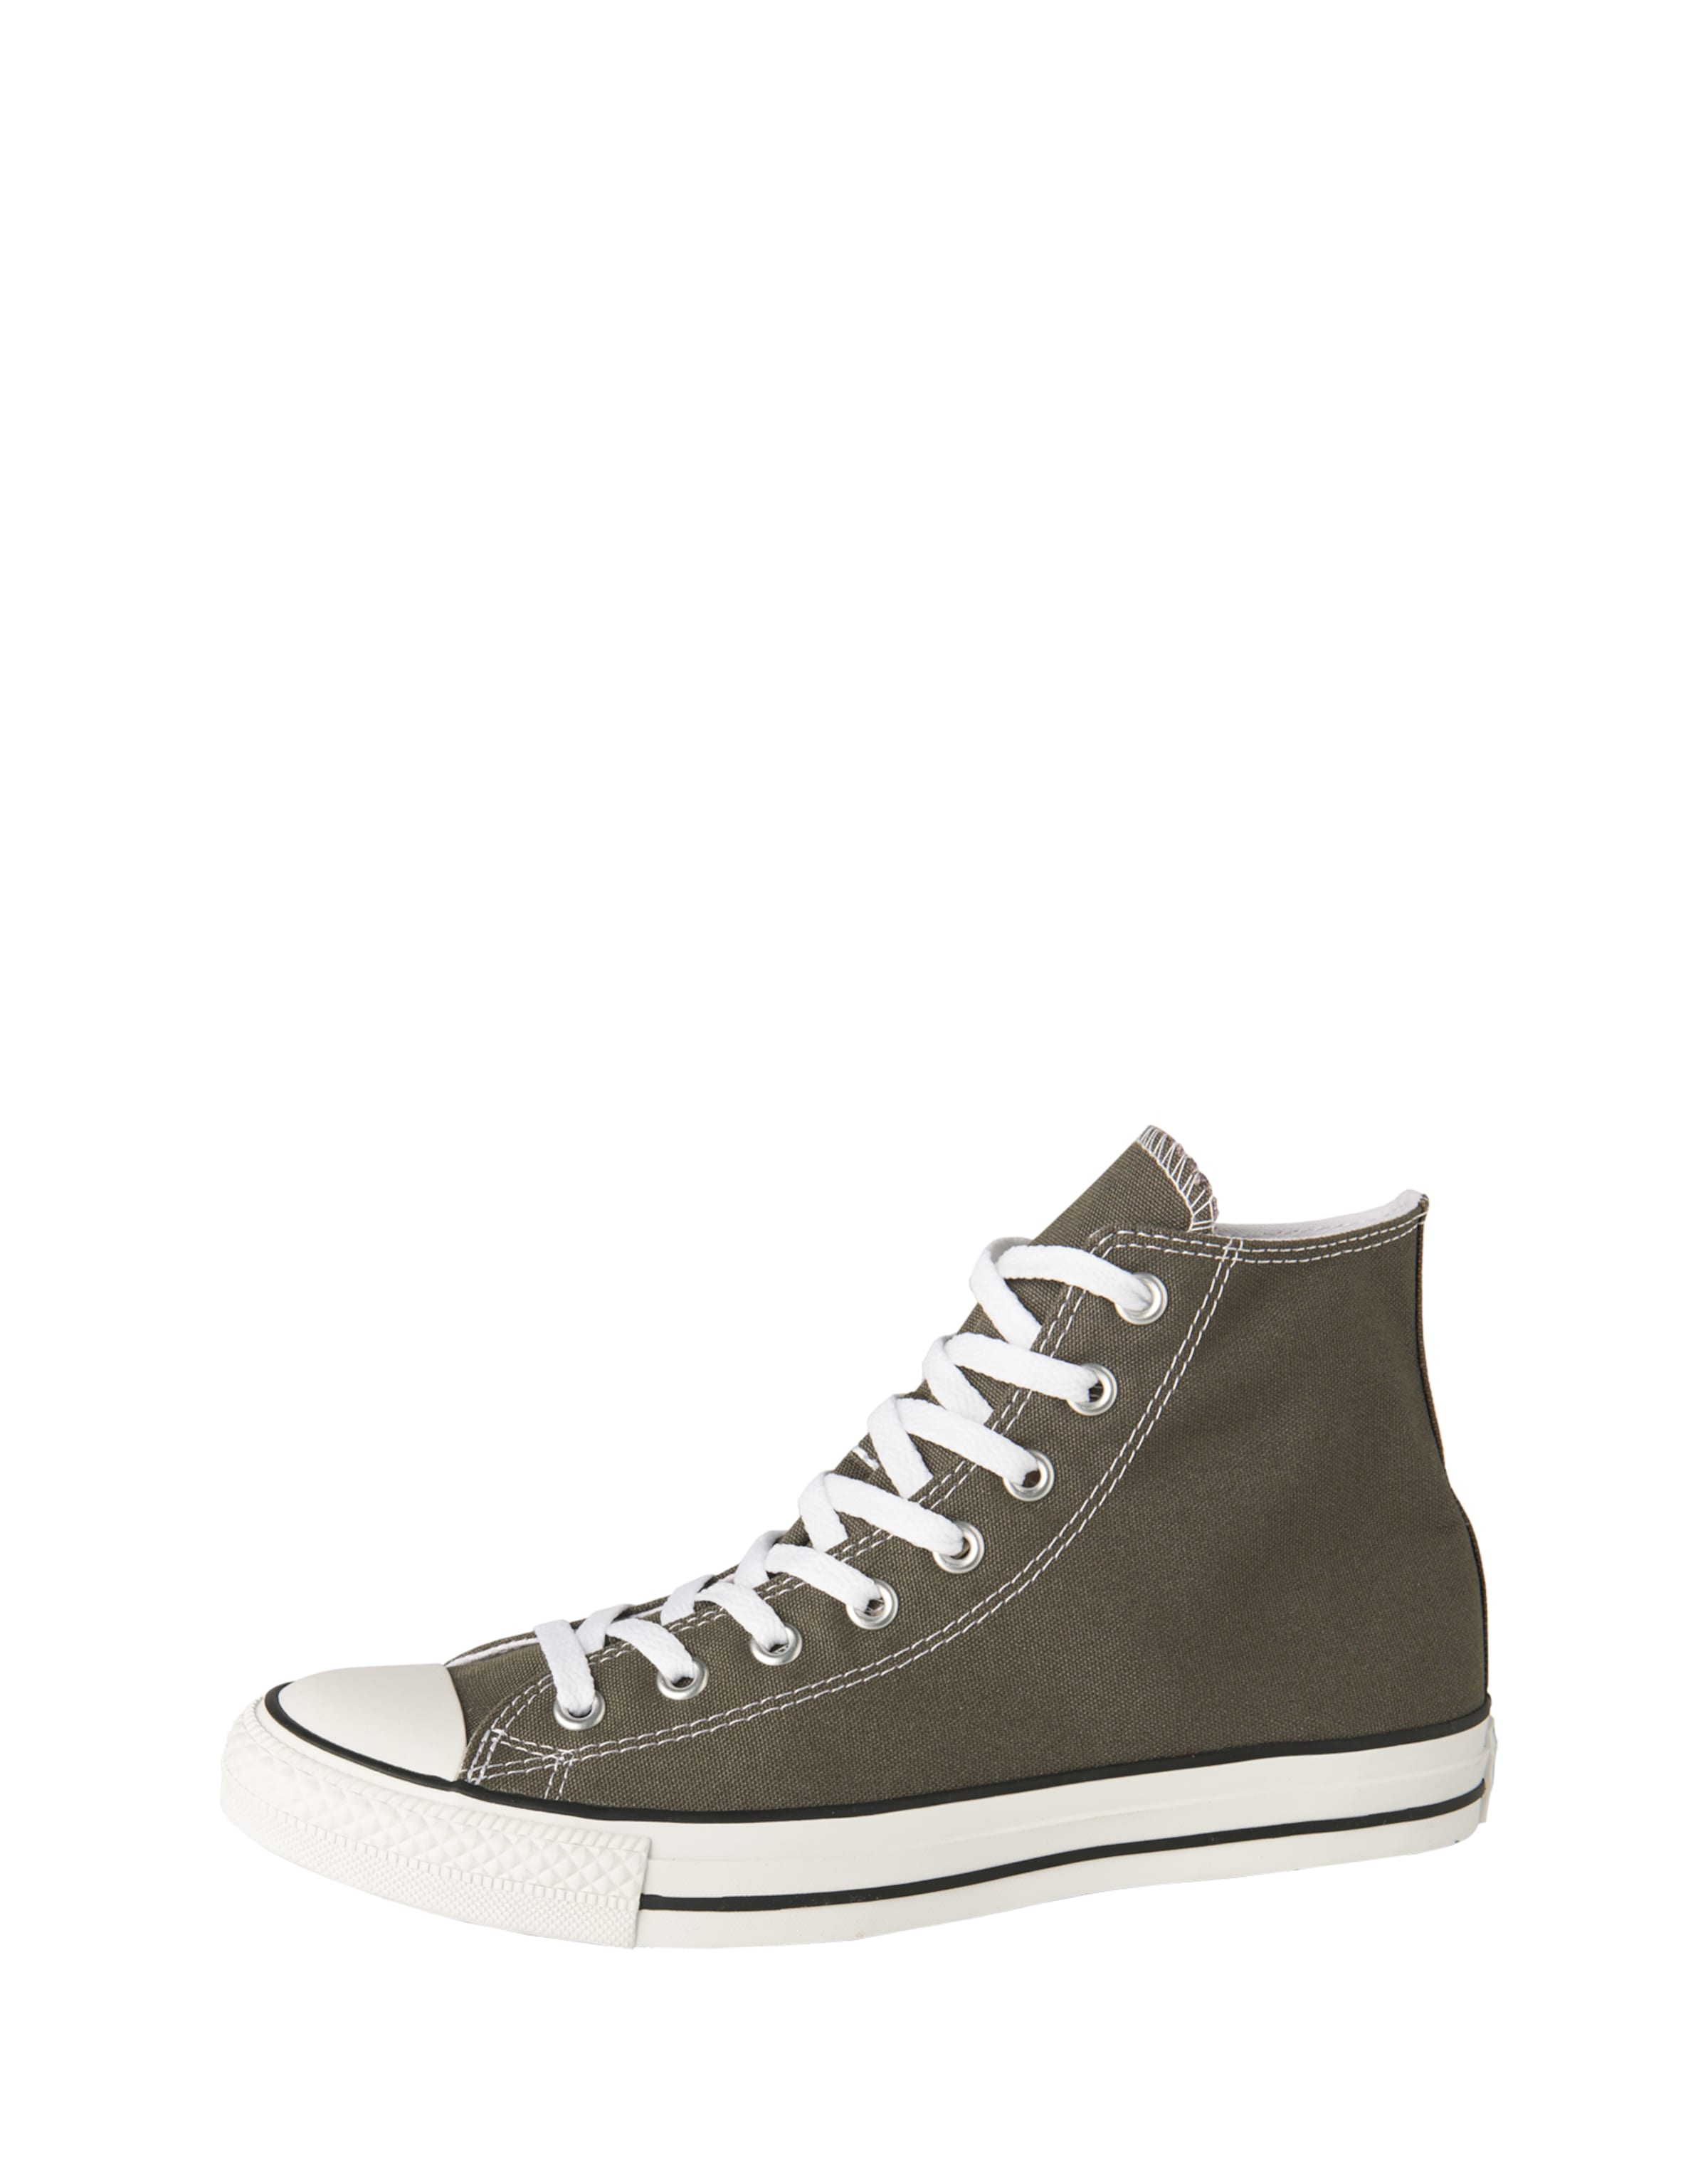 Turnschuhe 'Chuck Taylor AS Core'